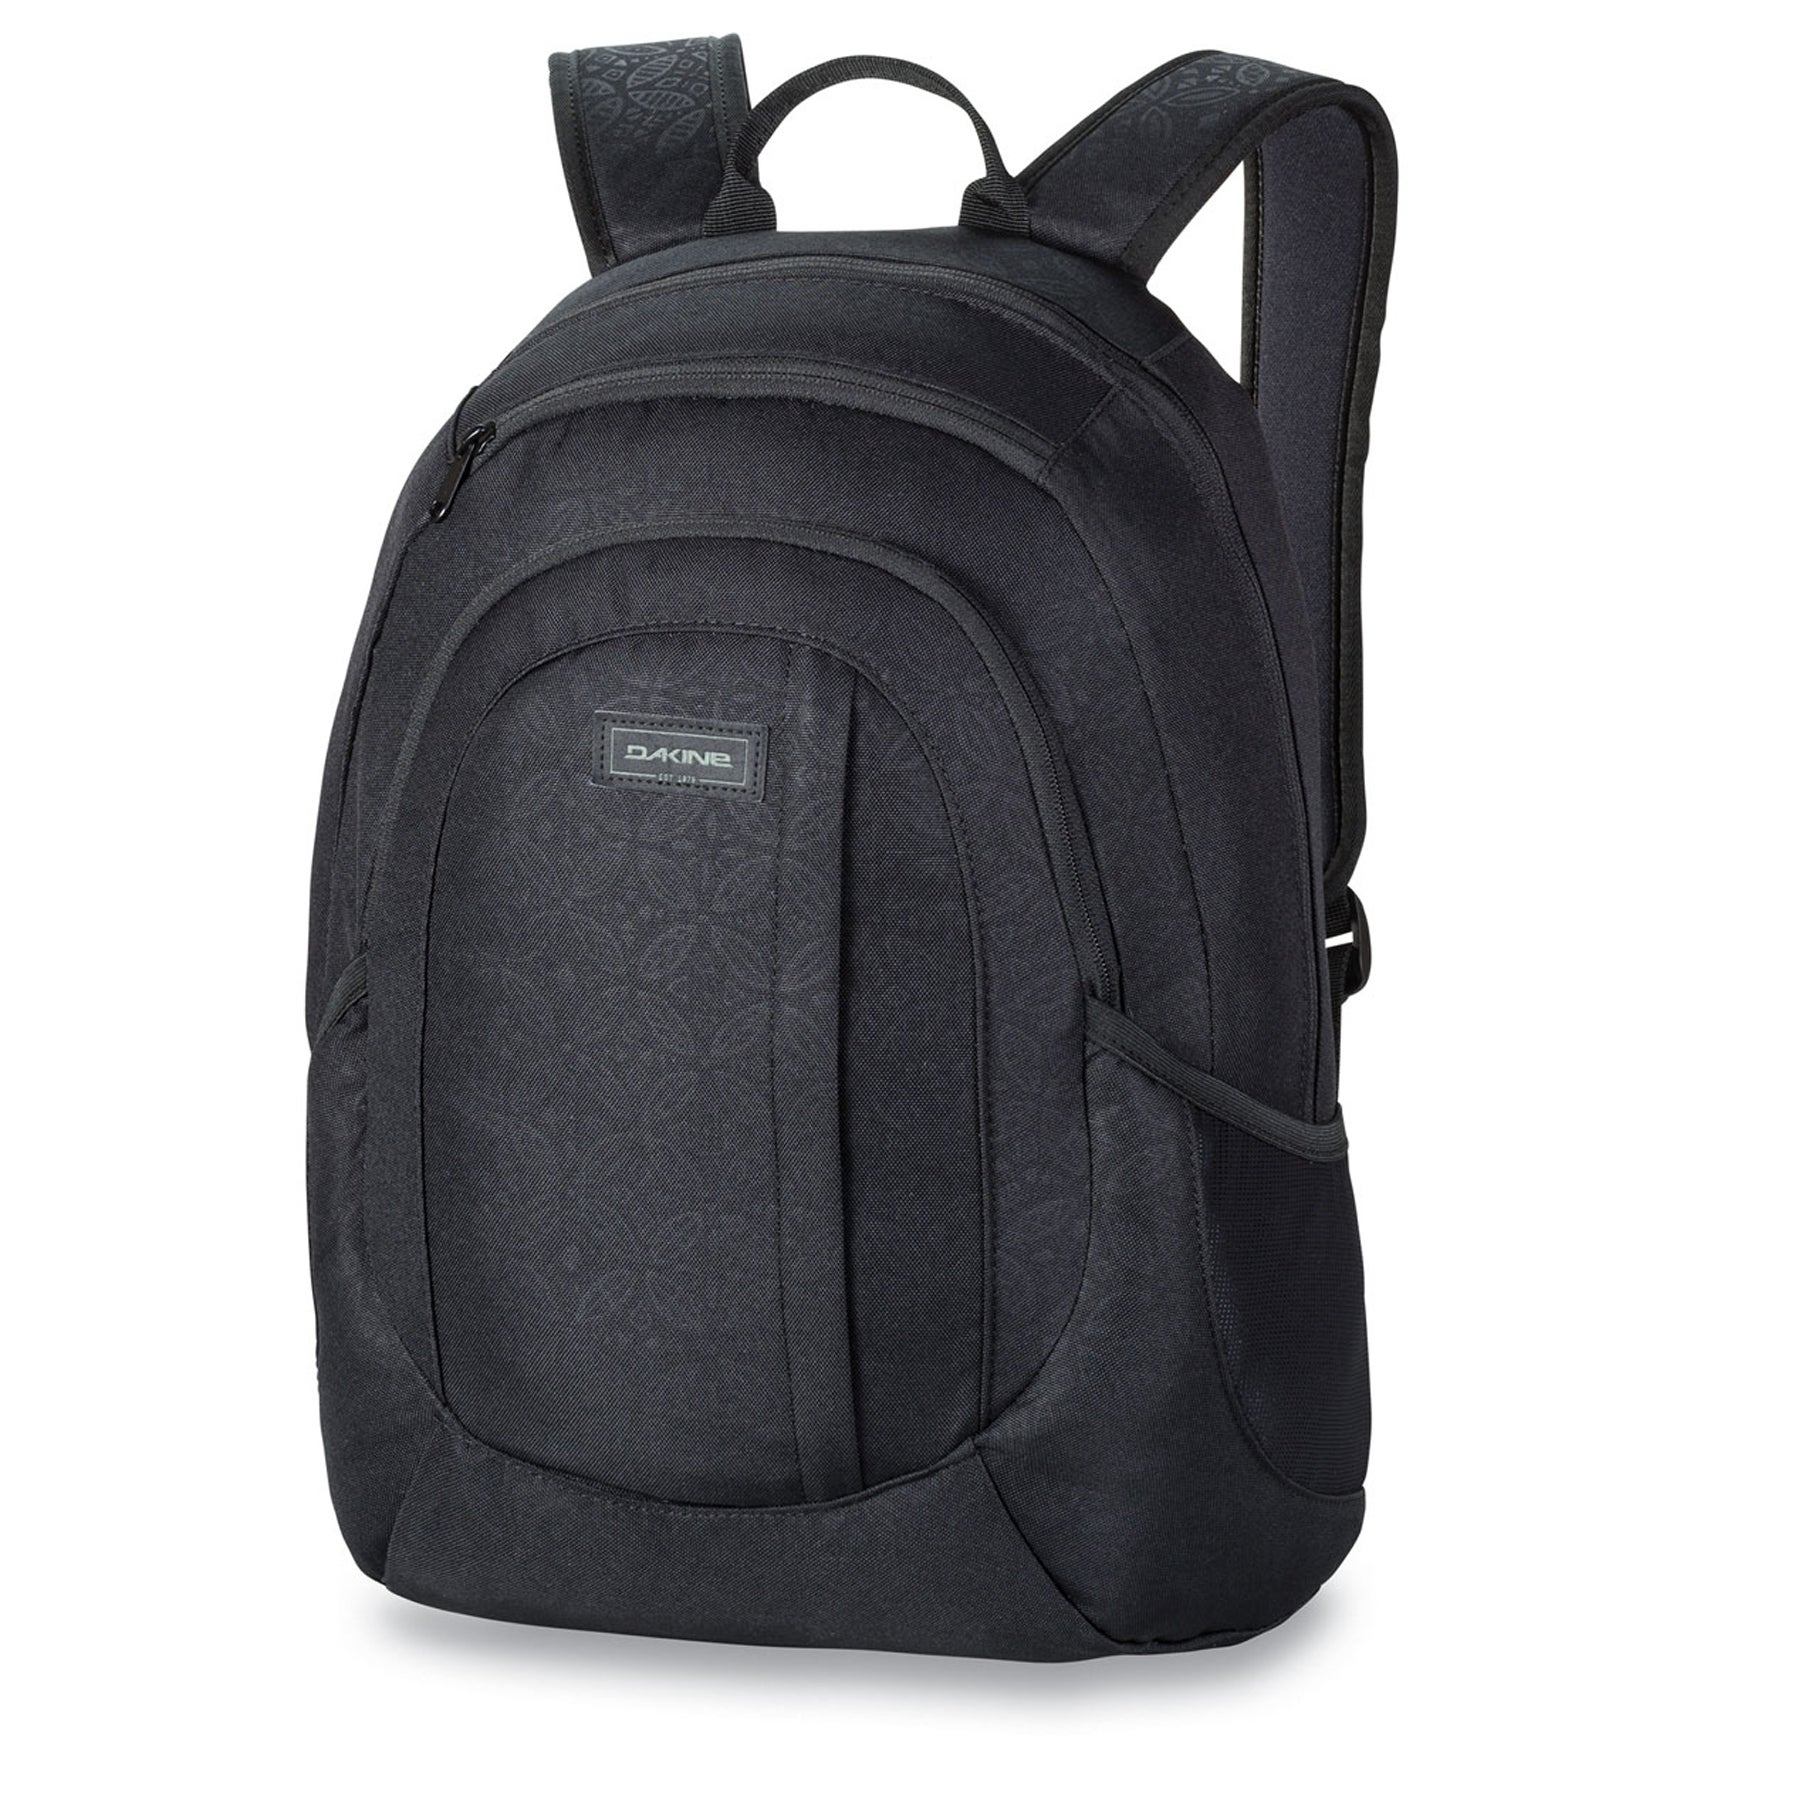 Dakine Garden 20L Womens Backpack - Tory